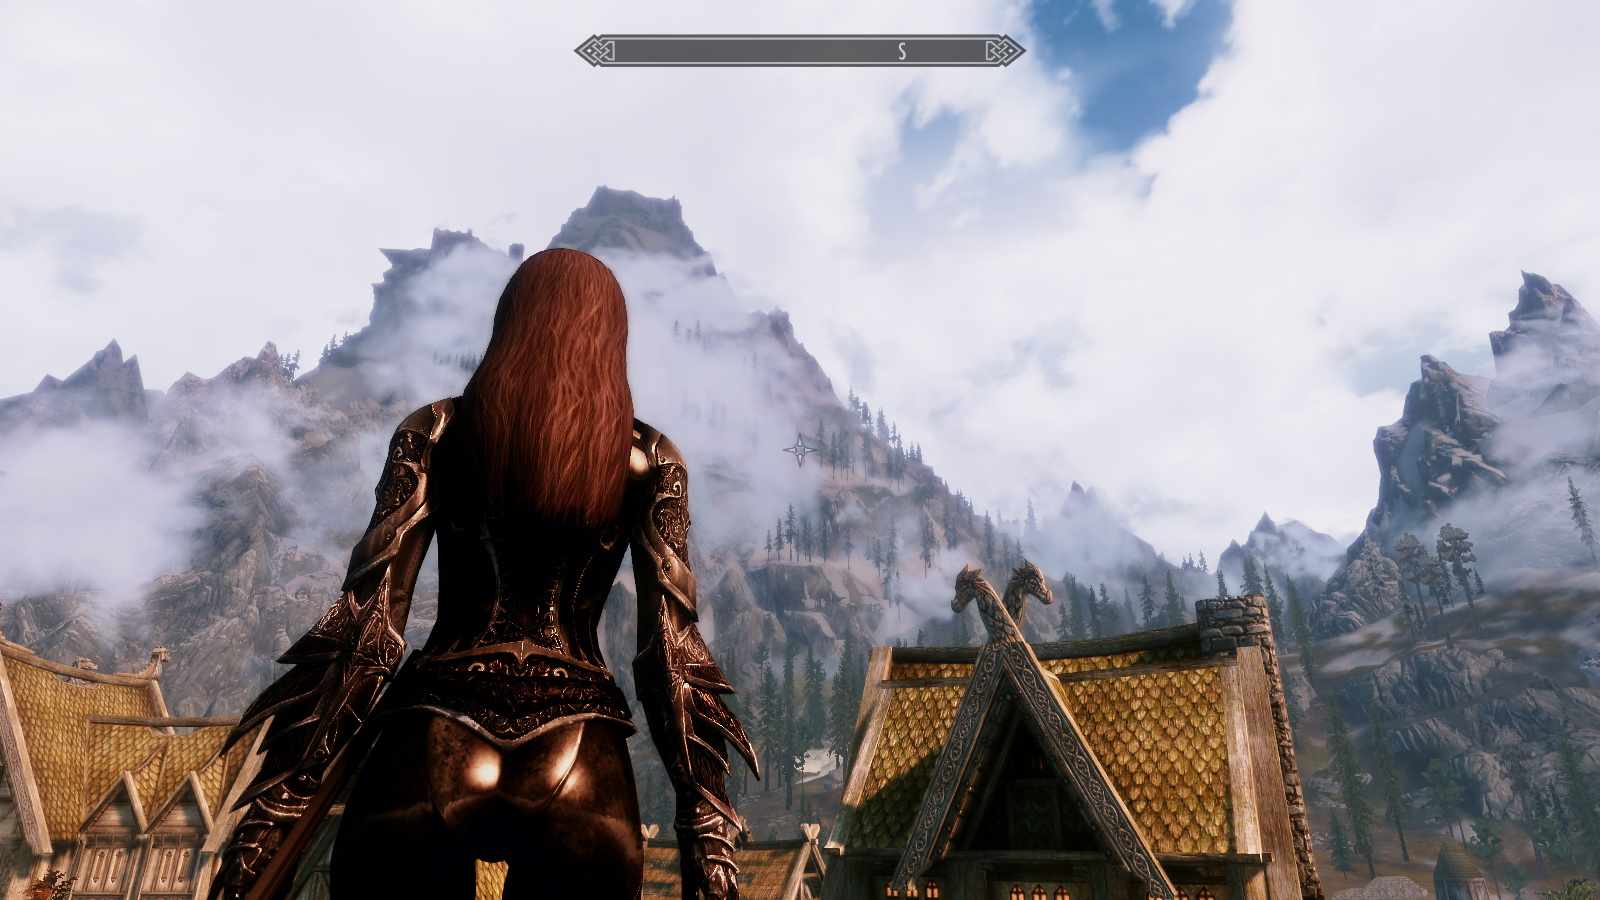 ScreenShot35 (2).jpg - Elder Scrolls 5: Skyrim, the